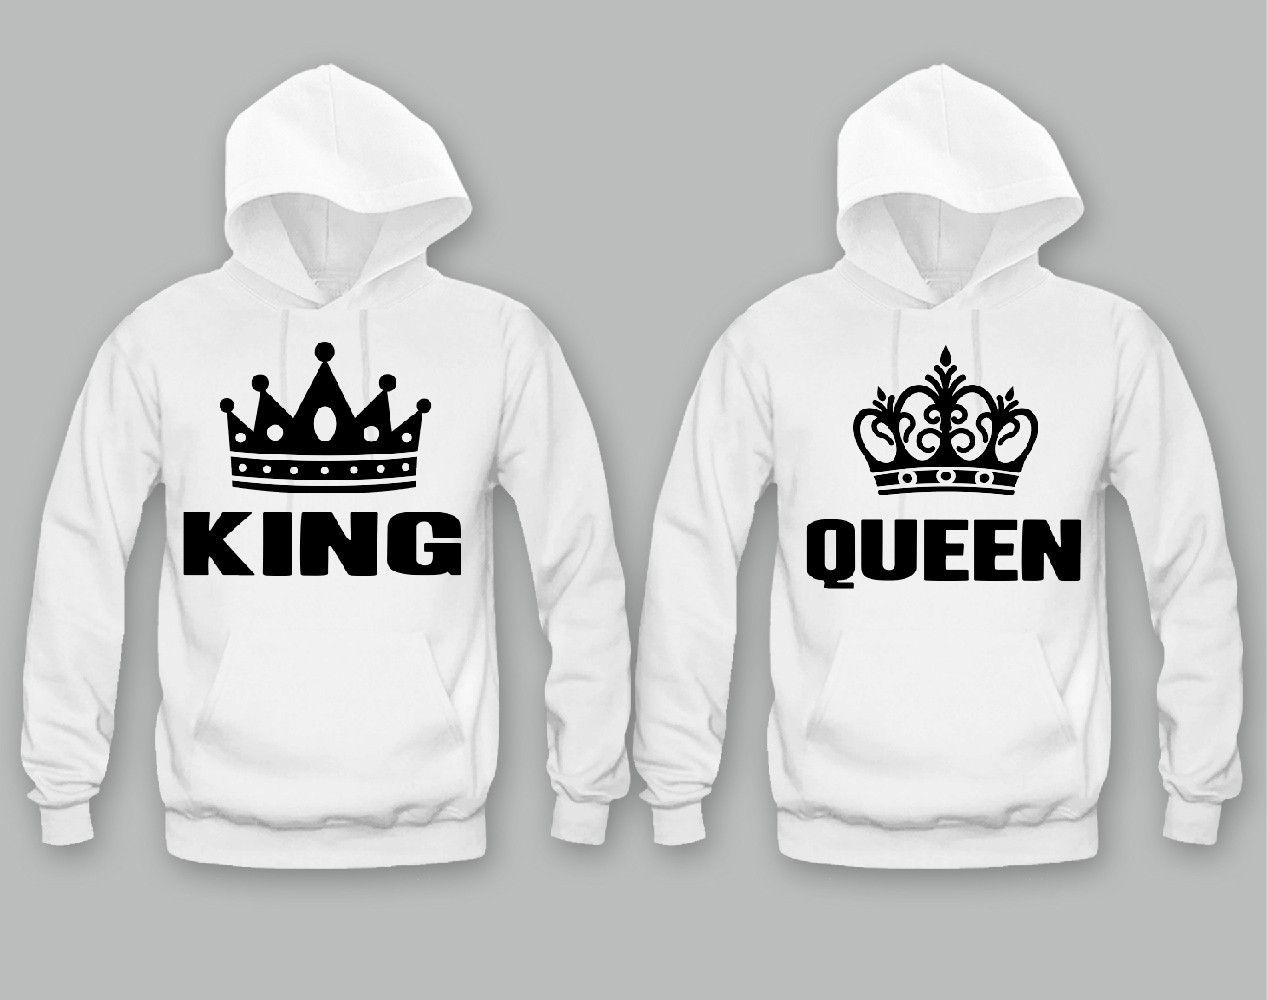 8a7cb06d32 King and Queen Unisex Couple Matching Hoodies in 2019 | <3 ...